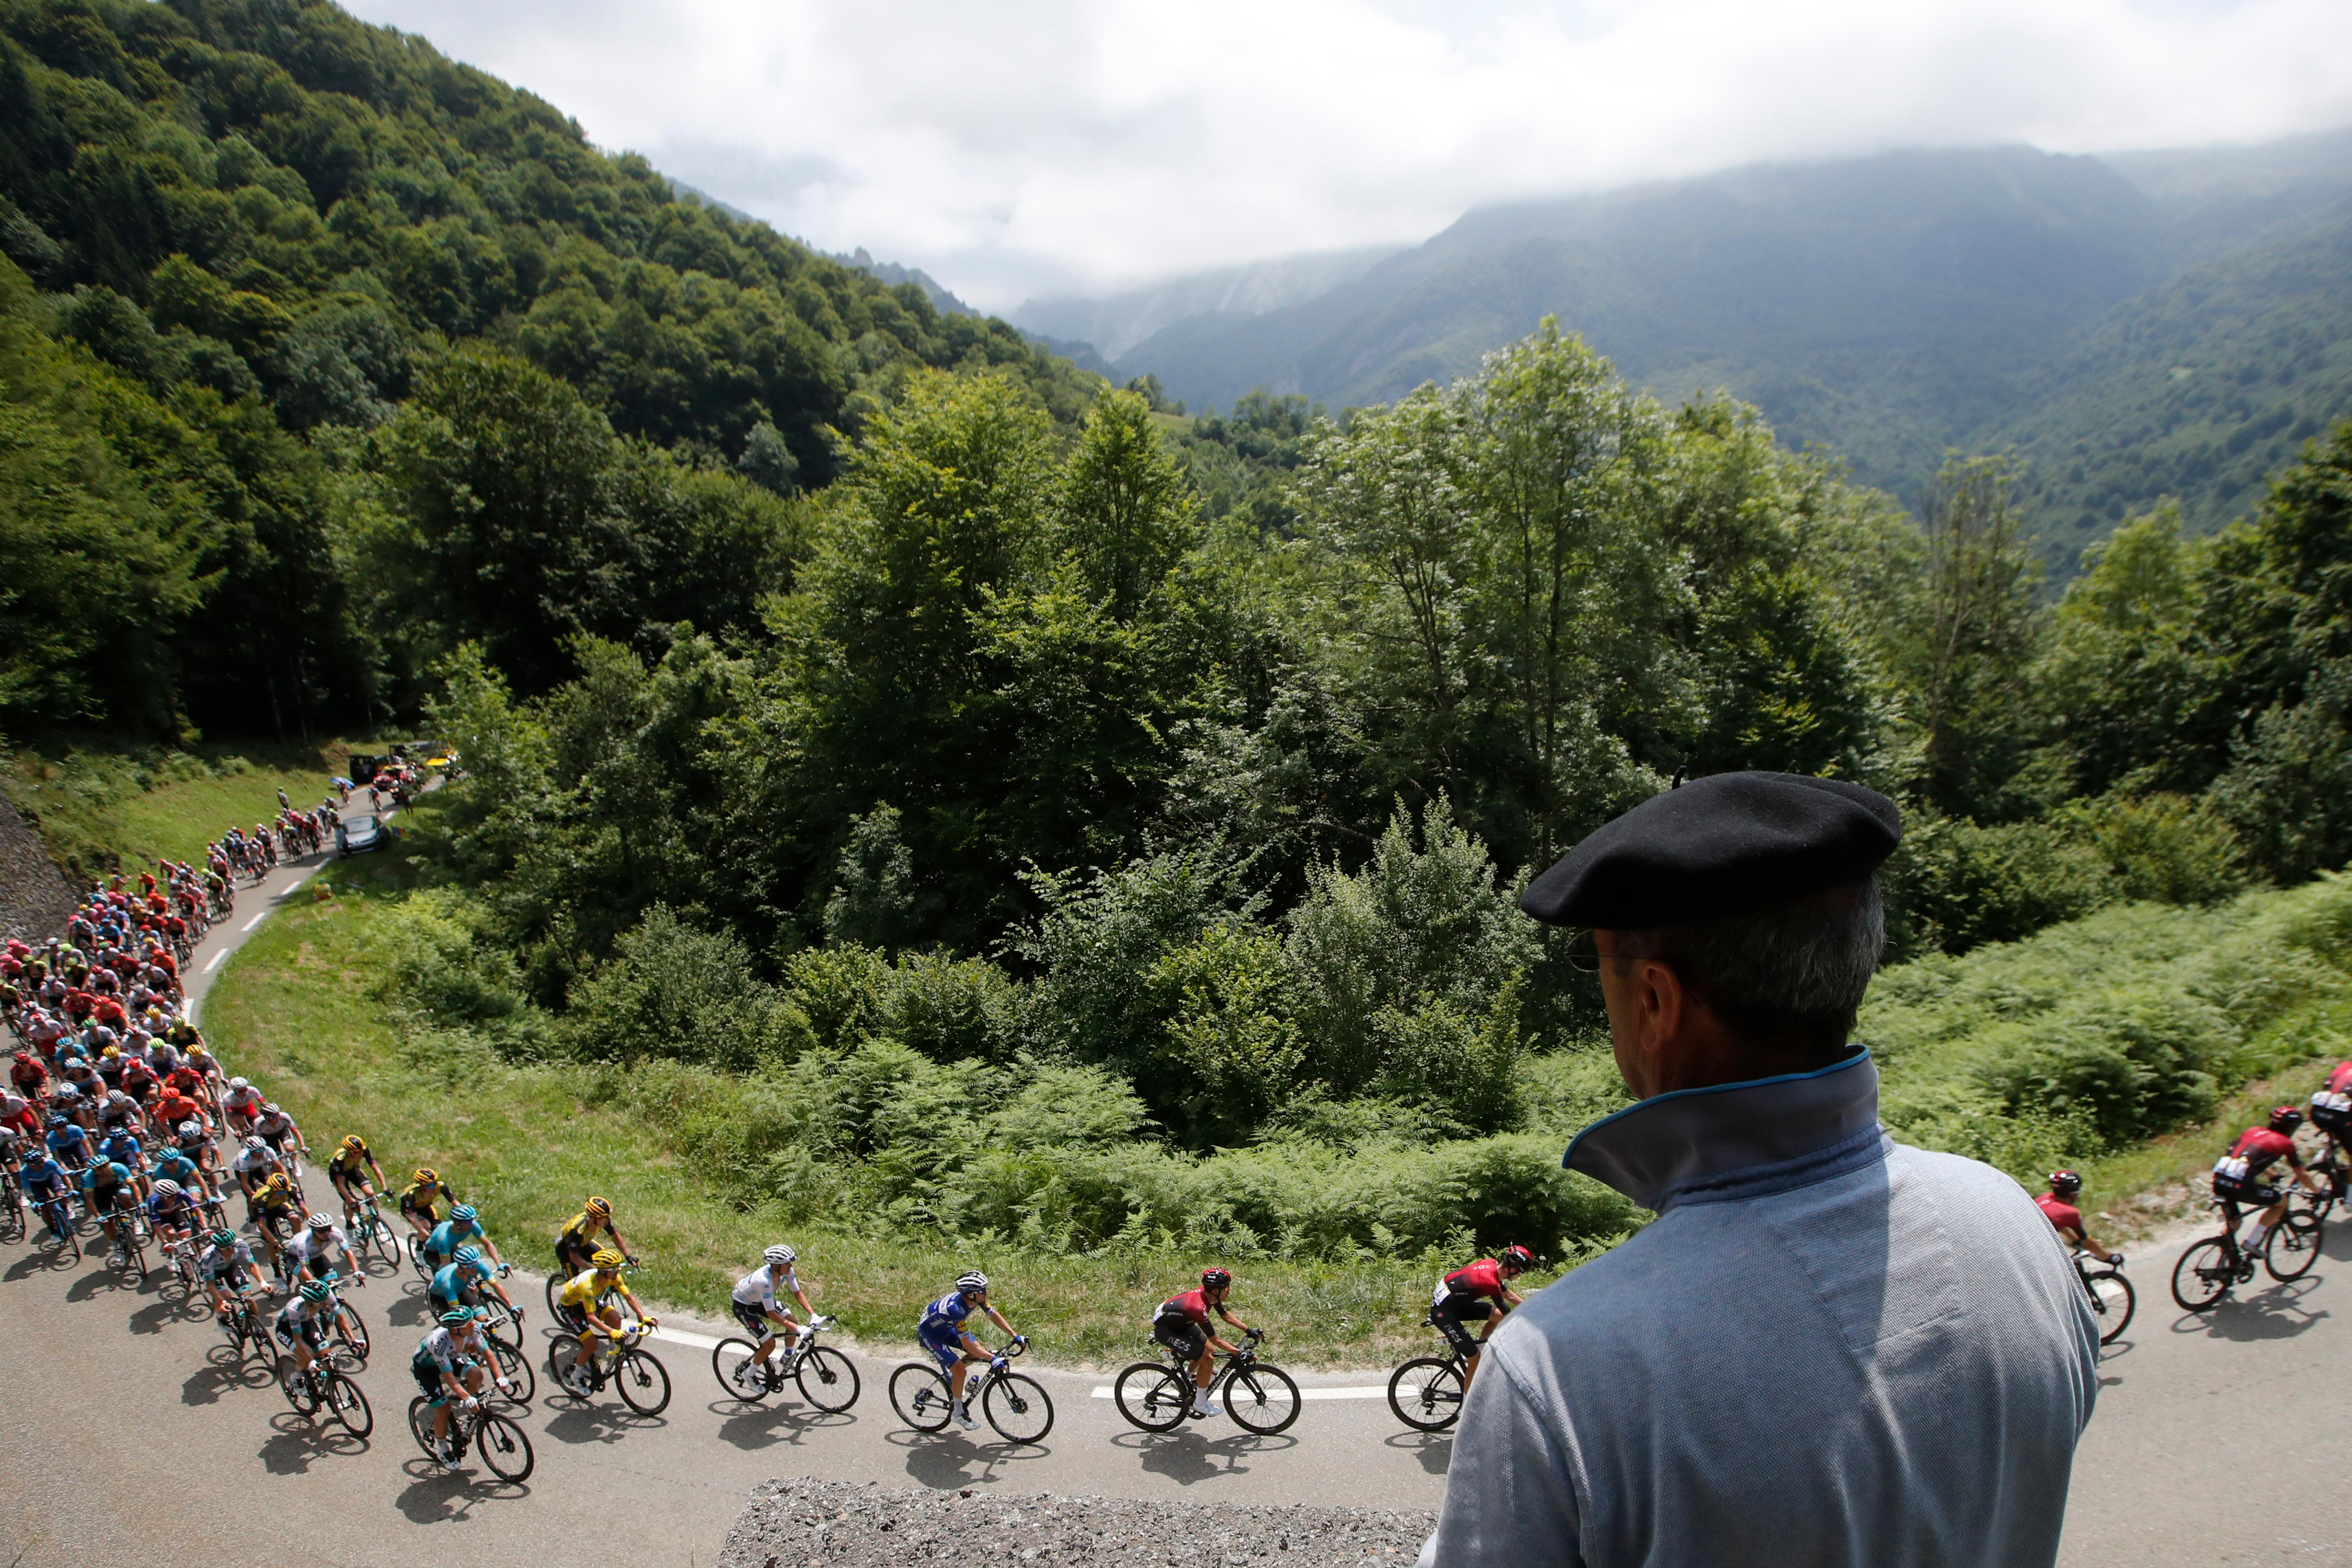 FILE - In this Saturday, July 20, 2019 file photo France's Julian Alaphilippe wearing the overall leader's yellow jersey rides with the pack during the fourteenth stage of the Tour de France cycling race over 117,5 kilometers (73 miles) with start in Tarbes and finish at the Tourmalet pass, France. (AP Photo/ Christophe Ena, File)